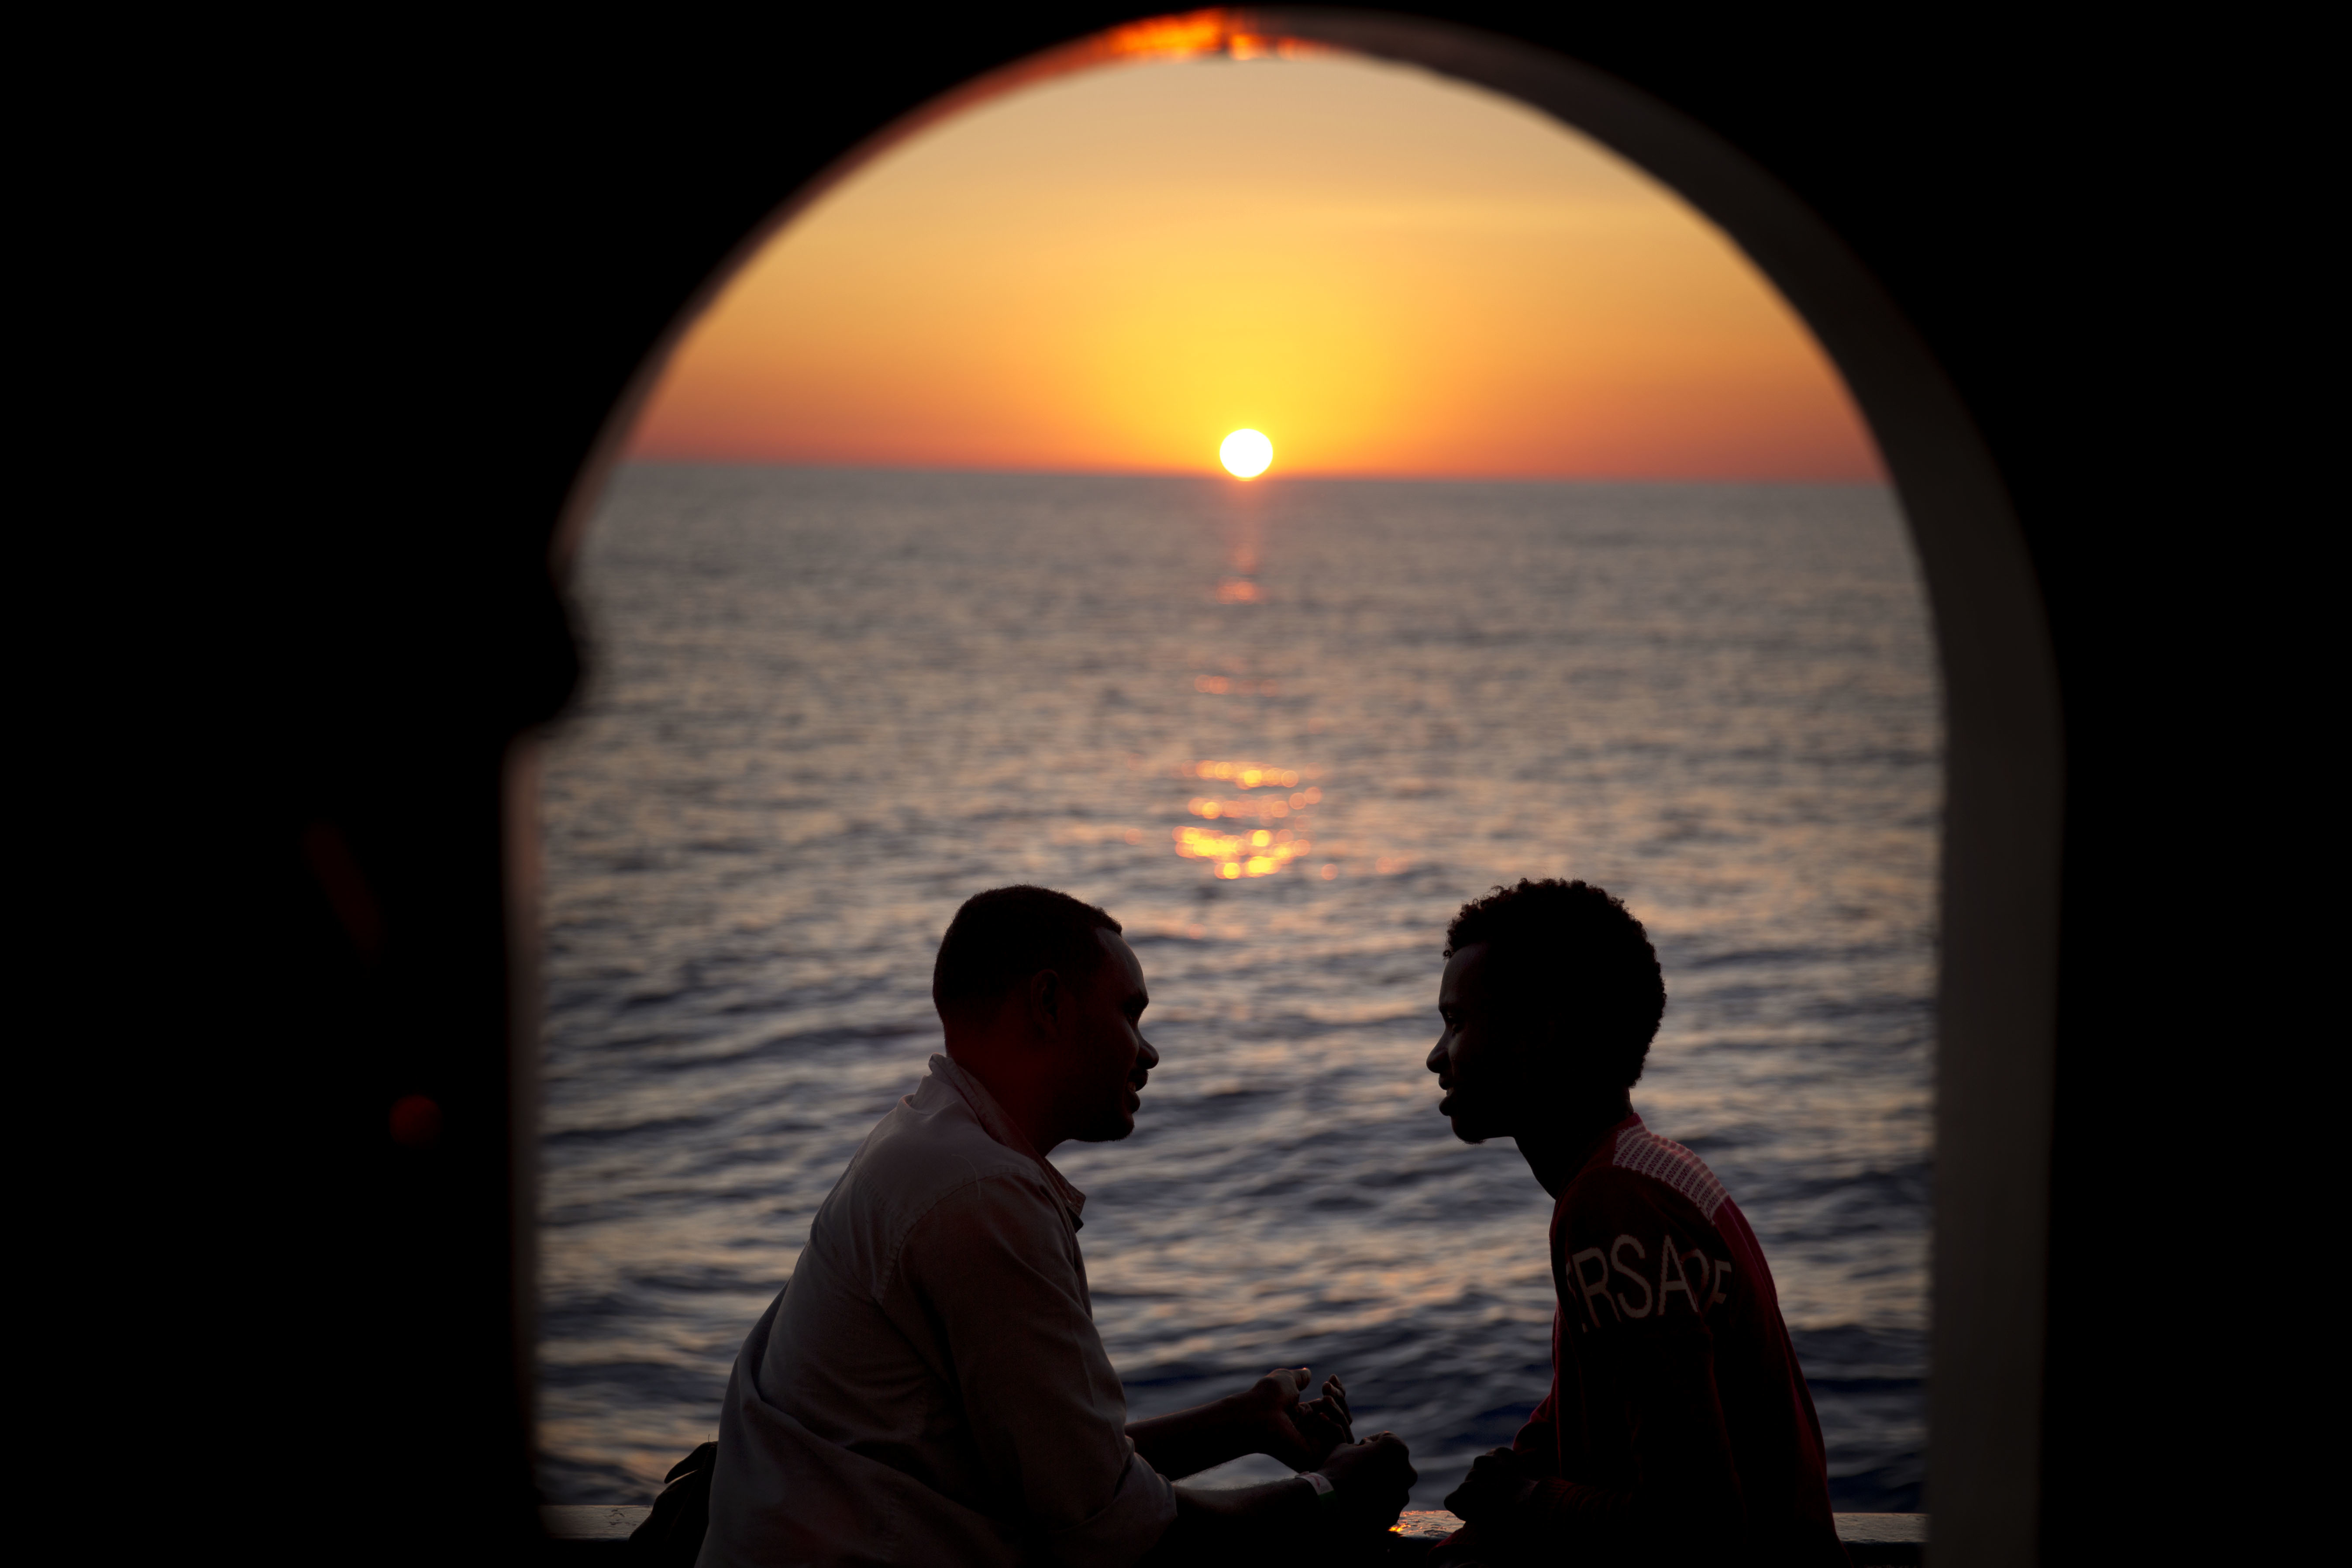 Two men from Sudan talk on the deck of the Golfo Azzurro rescue vessel, after being rescued from a rubber boat out of control near the Libyan coast, on Thursday, June 22, 2017. (AP Photo/Emilio Morenatti)